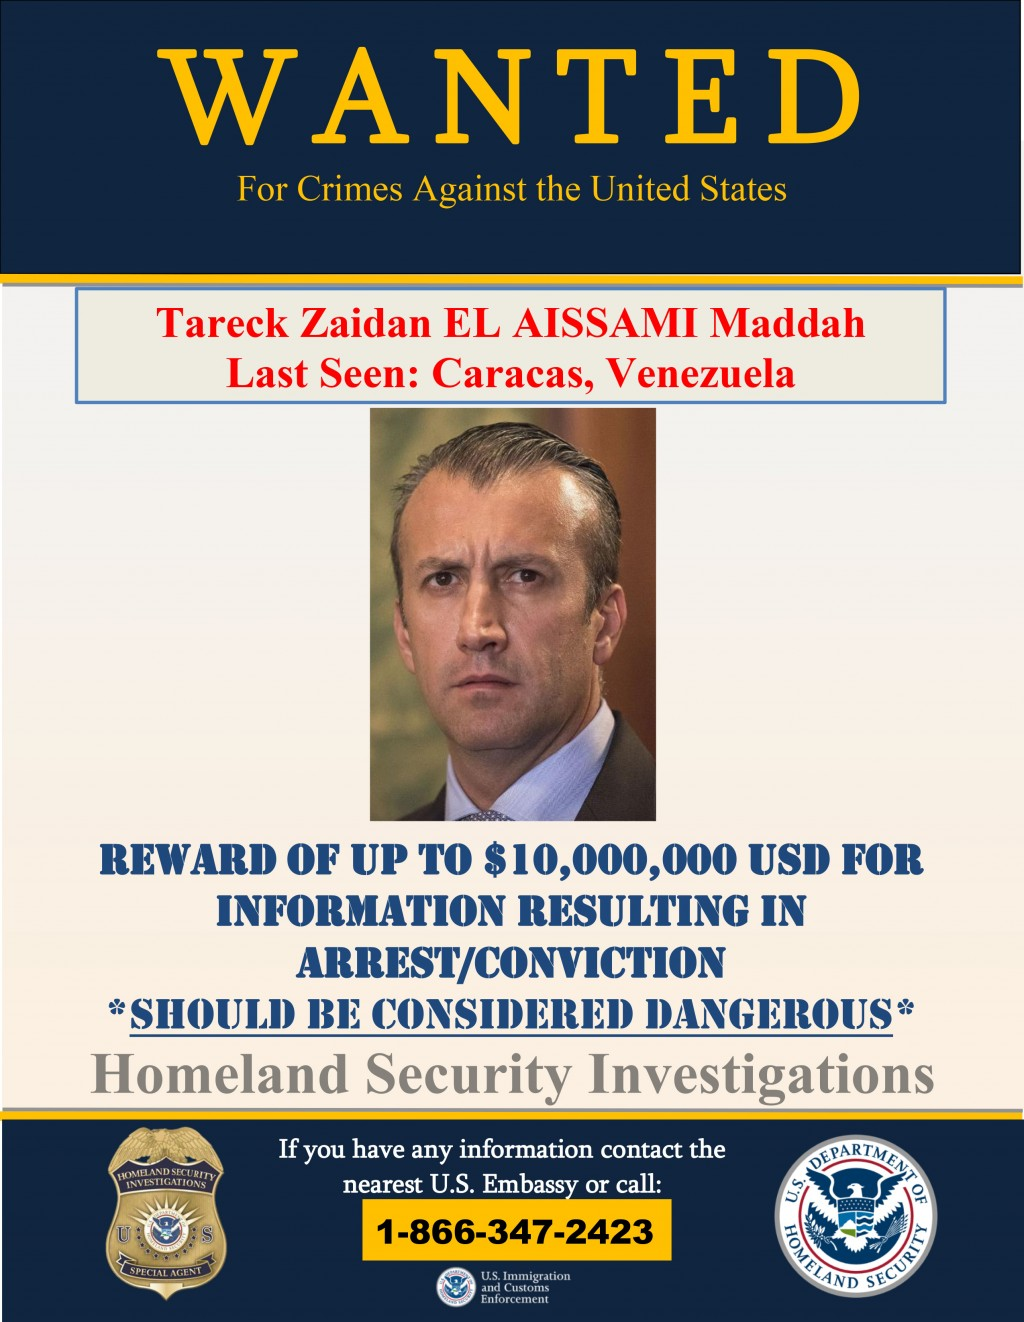 This image provided by the U.S. Department of Justice shows a wanted poster for Tareck Zaidan that was released on Thursday, March 26, 2020. The U.S. ...